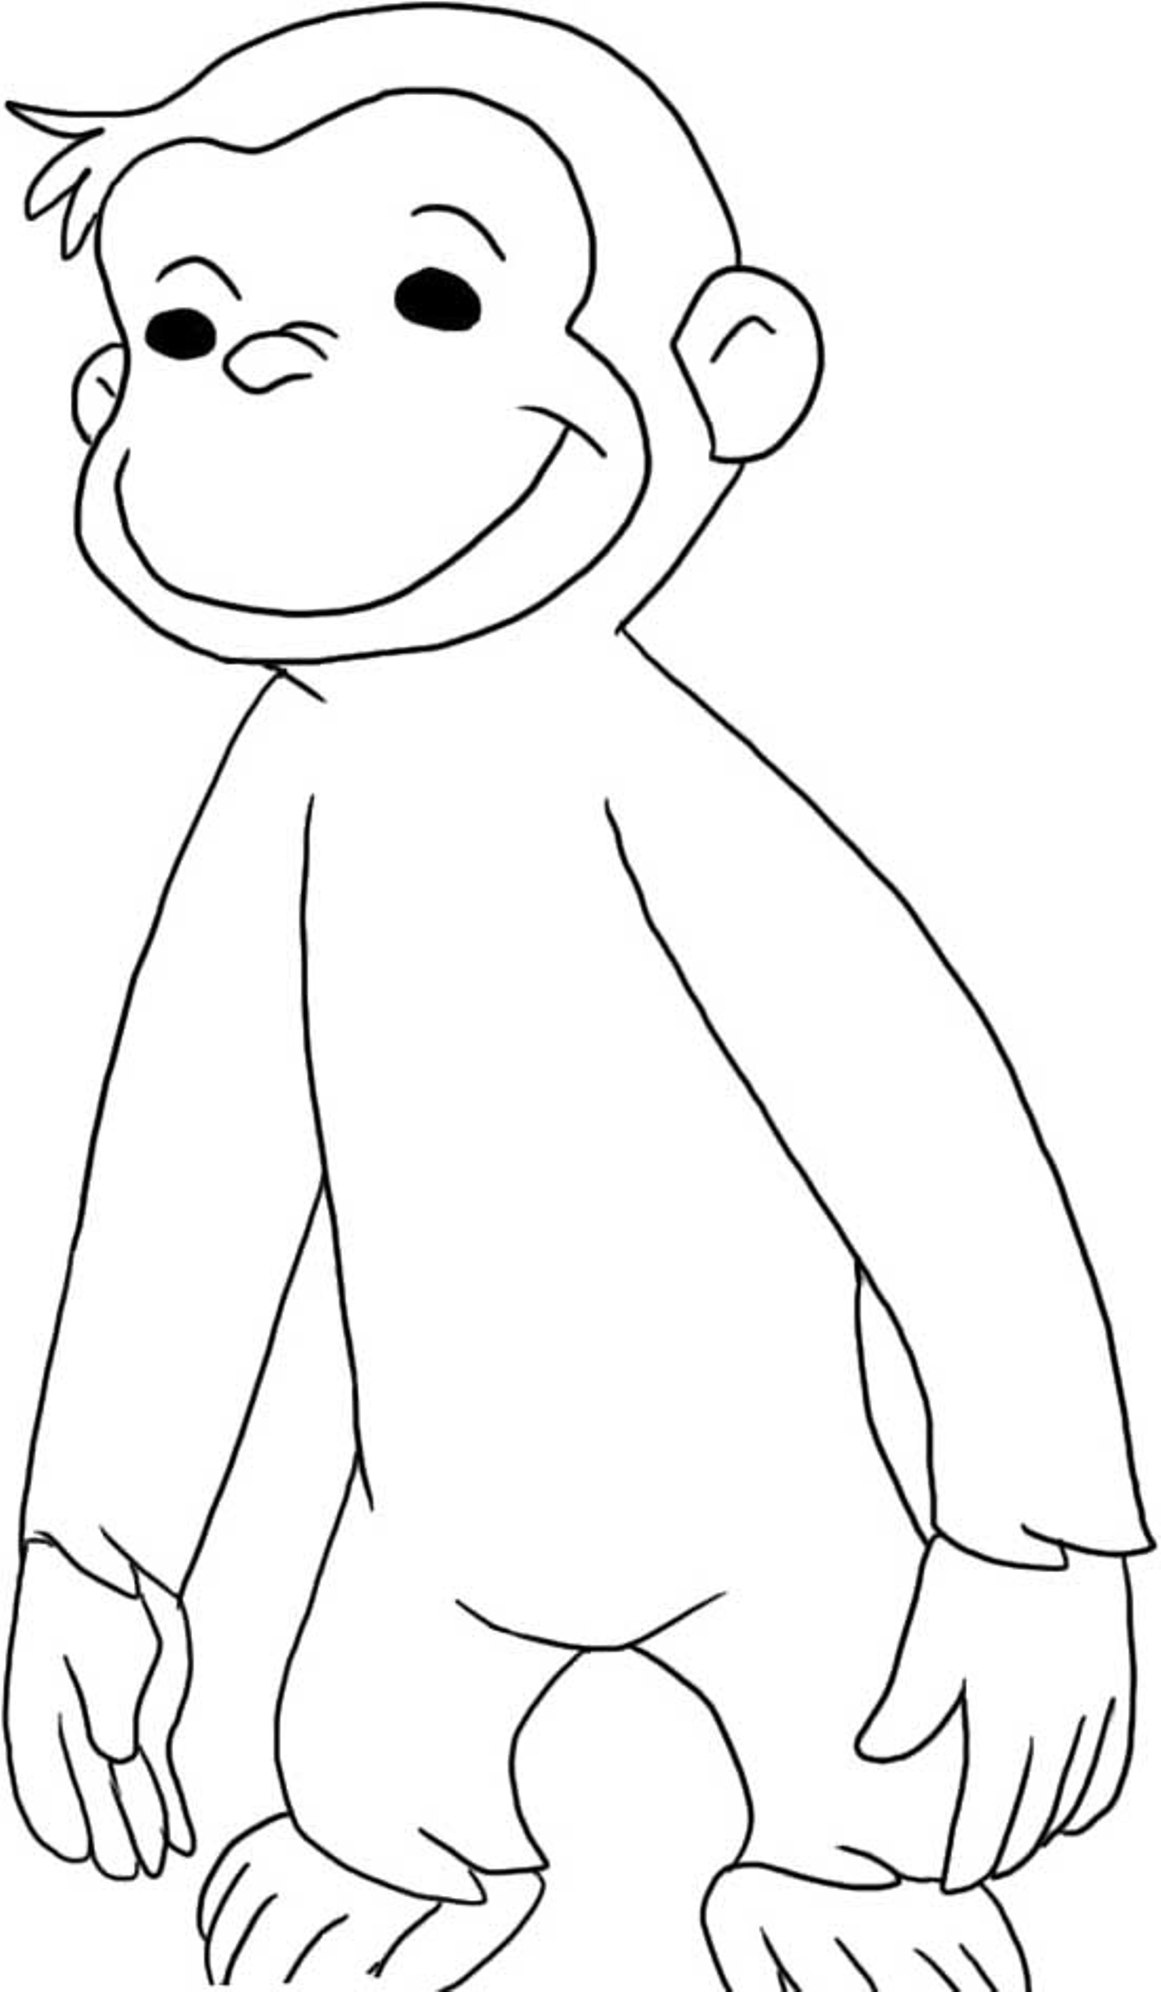 curious george coloring curious george coloring pages birthday printable curious coloring george